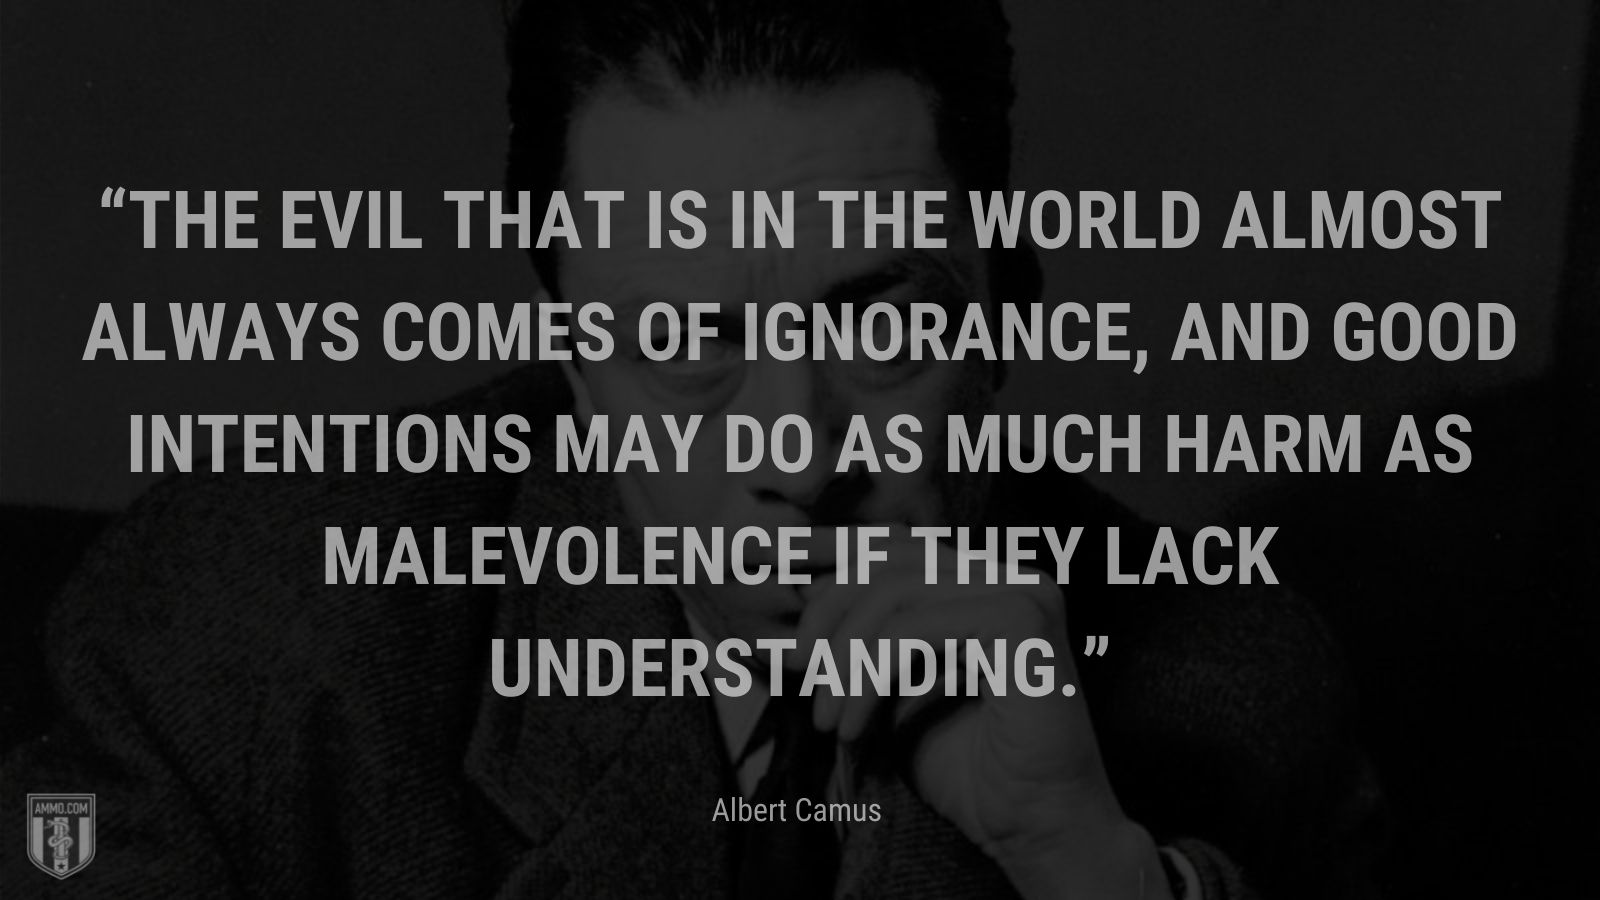 """""""The evil that is in the world almost always comes of ignorance, and good intentions may do as much harm as malevolence if they lack understanding."""" - Albert Camus"""